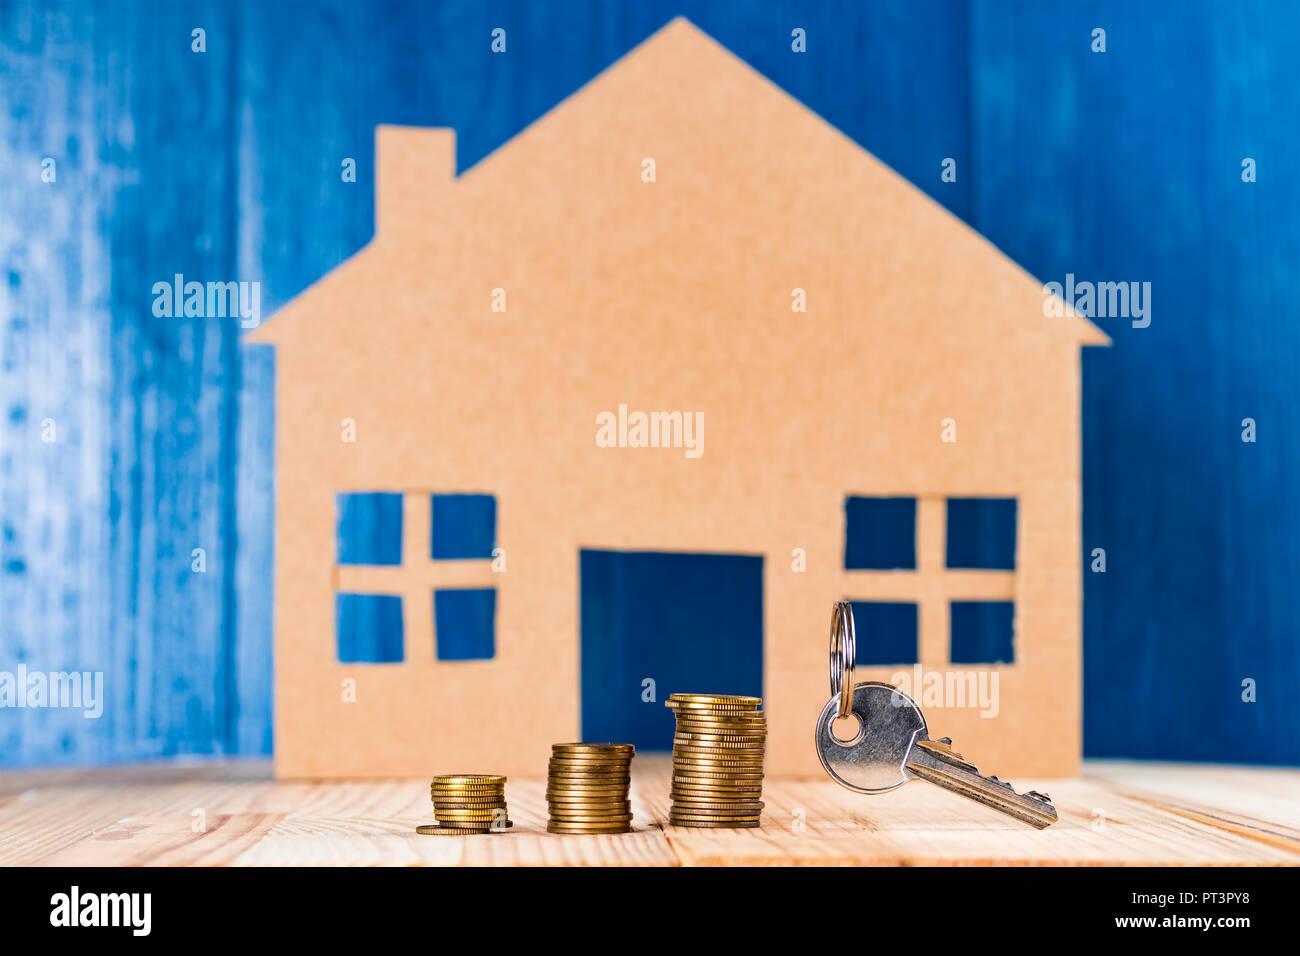 Stacks of coins money and door key against house shape and blue background. Household expenses or loan abstract concept. - Stock Image